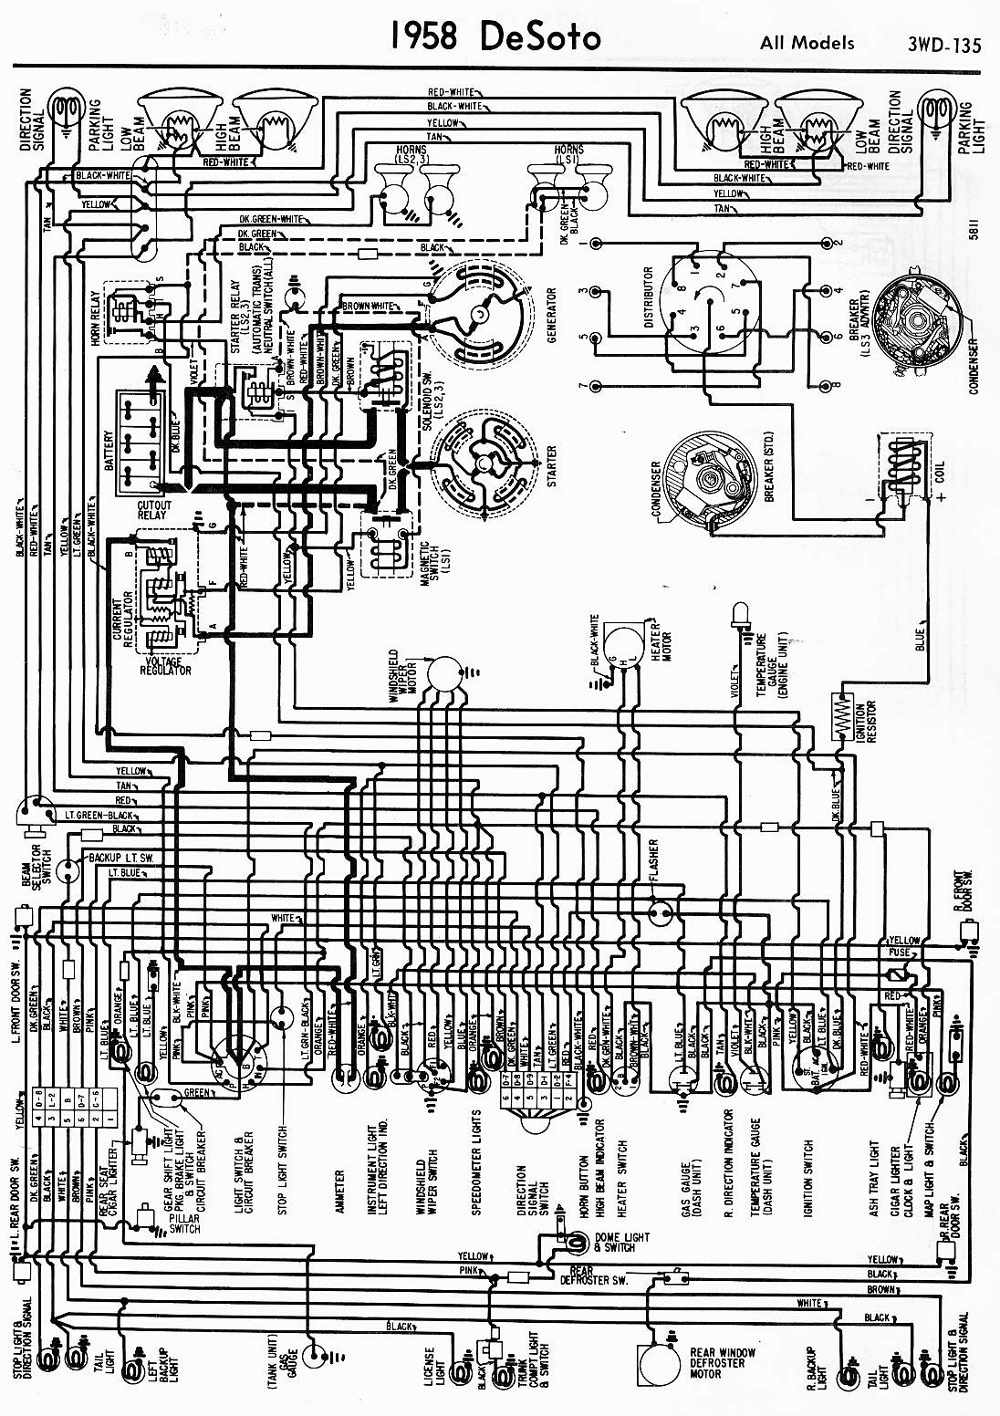 wiring diagrams of 1958 desoto all models?t=1508403756 1941 buick wiring diagram free 2006 chrysler pacifica wiring 2006 buick lacrosse wiring diagram at readyjetset.co